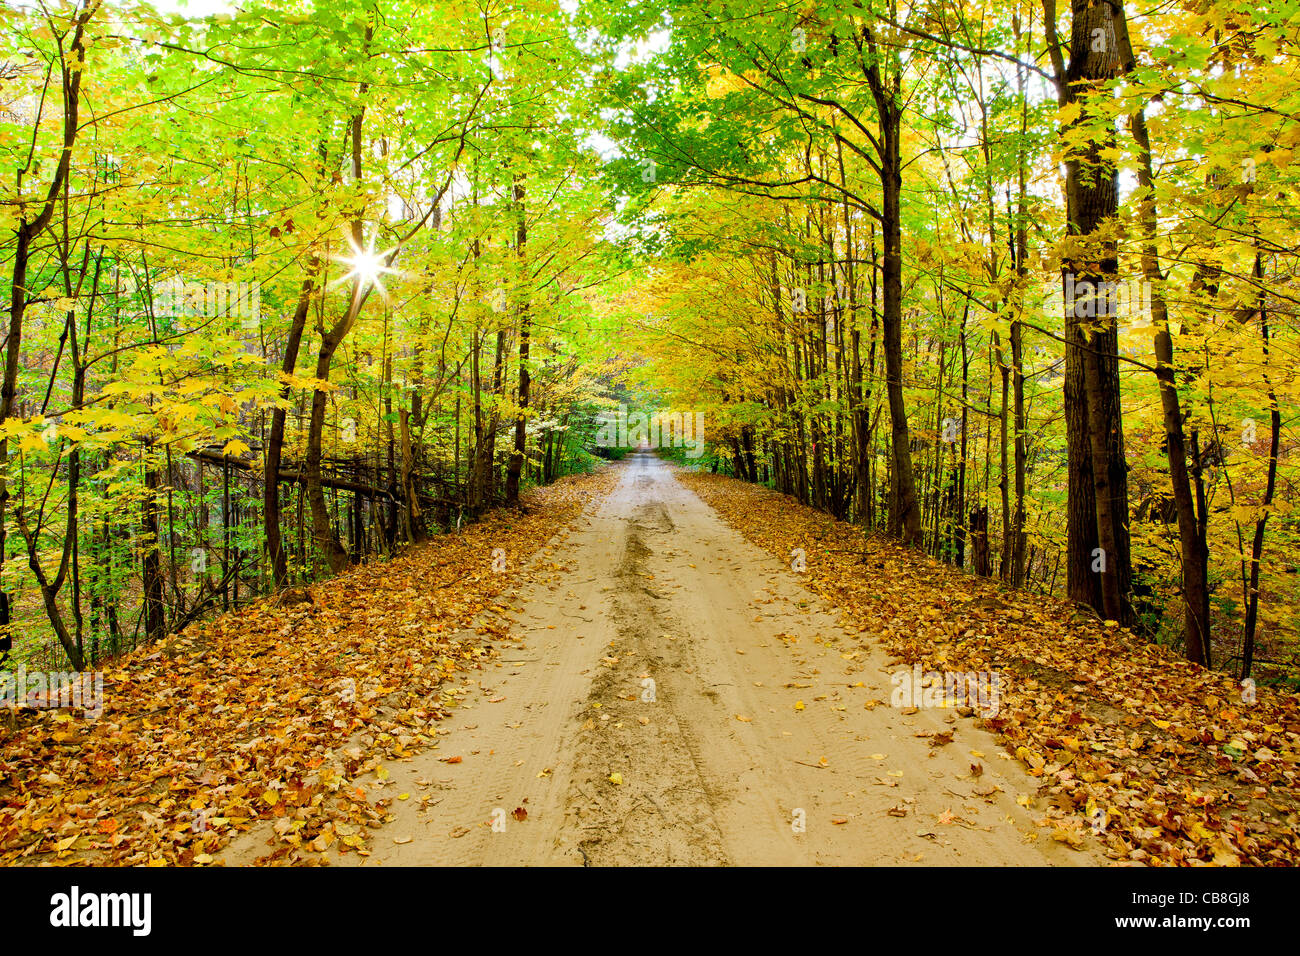 Road covered in fall leaves - Stock Image